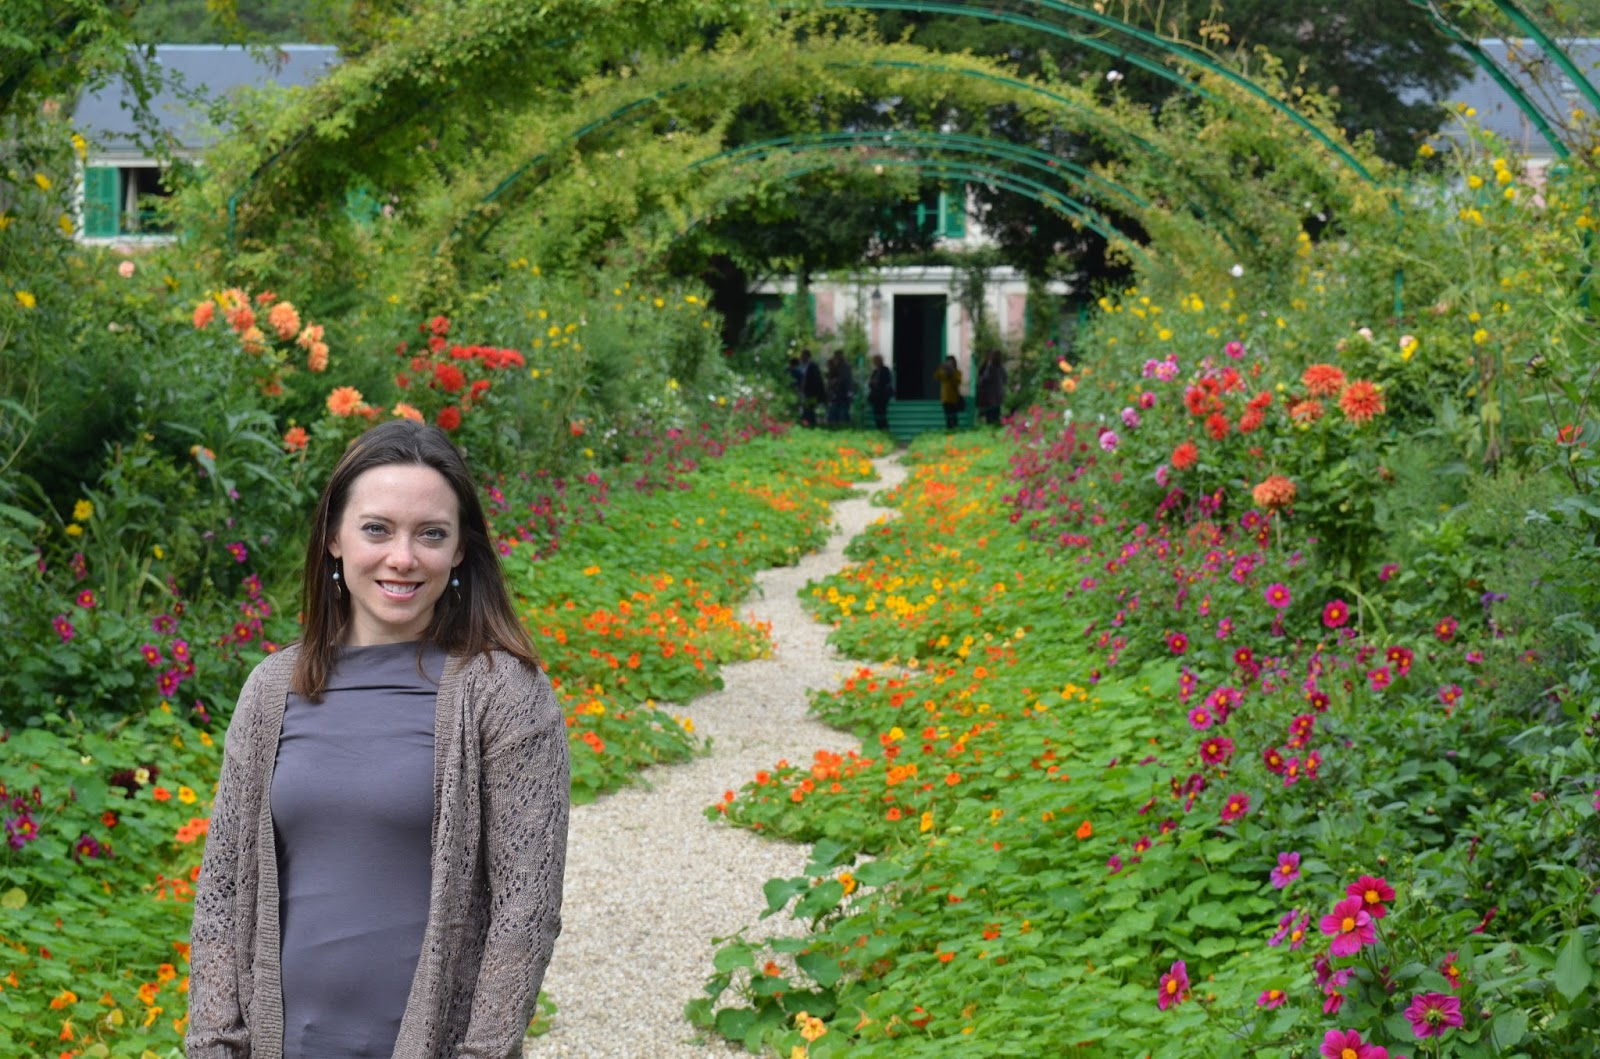 Rebecca 39 s texas garden monet 39 s giverny garden the clos for The water garden